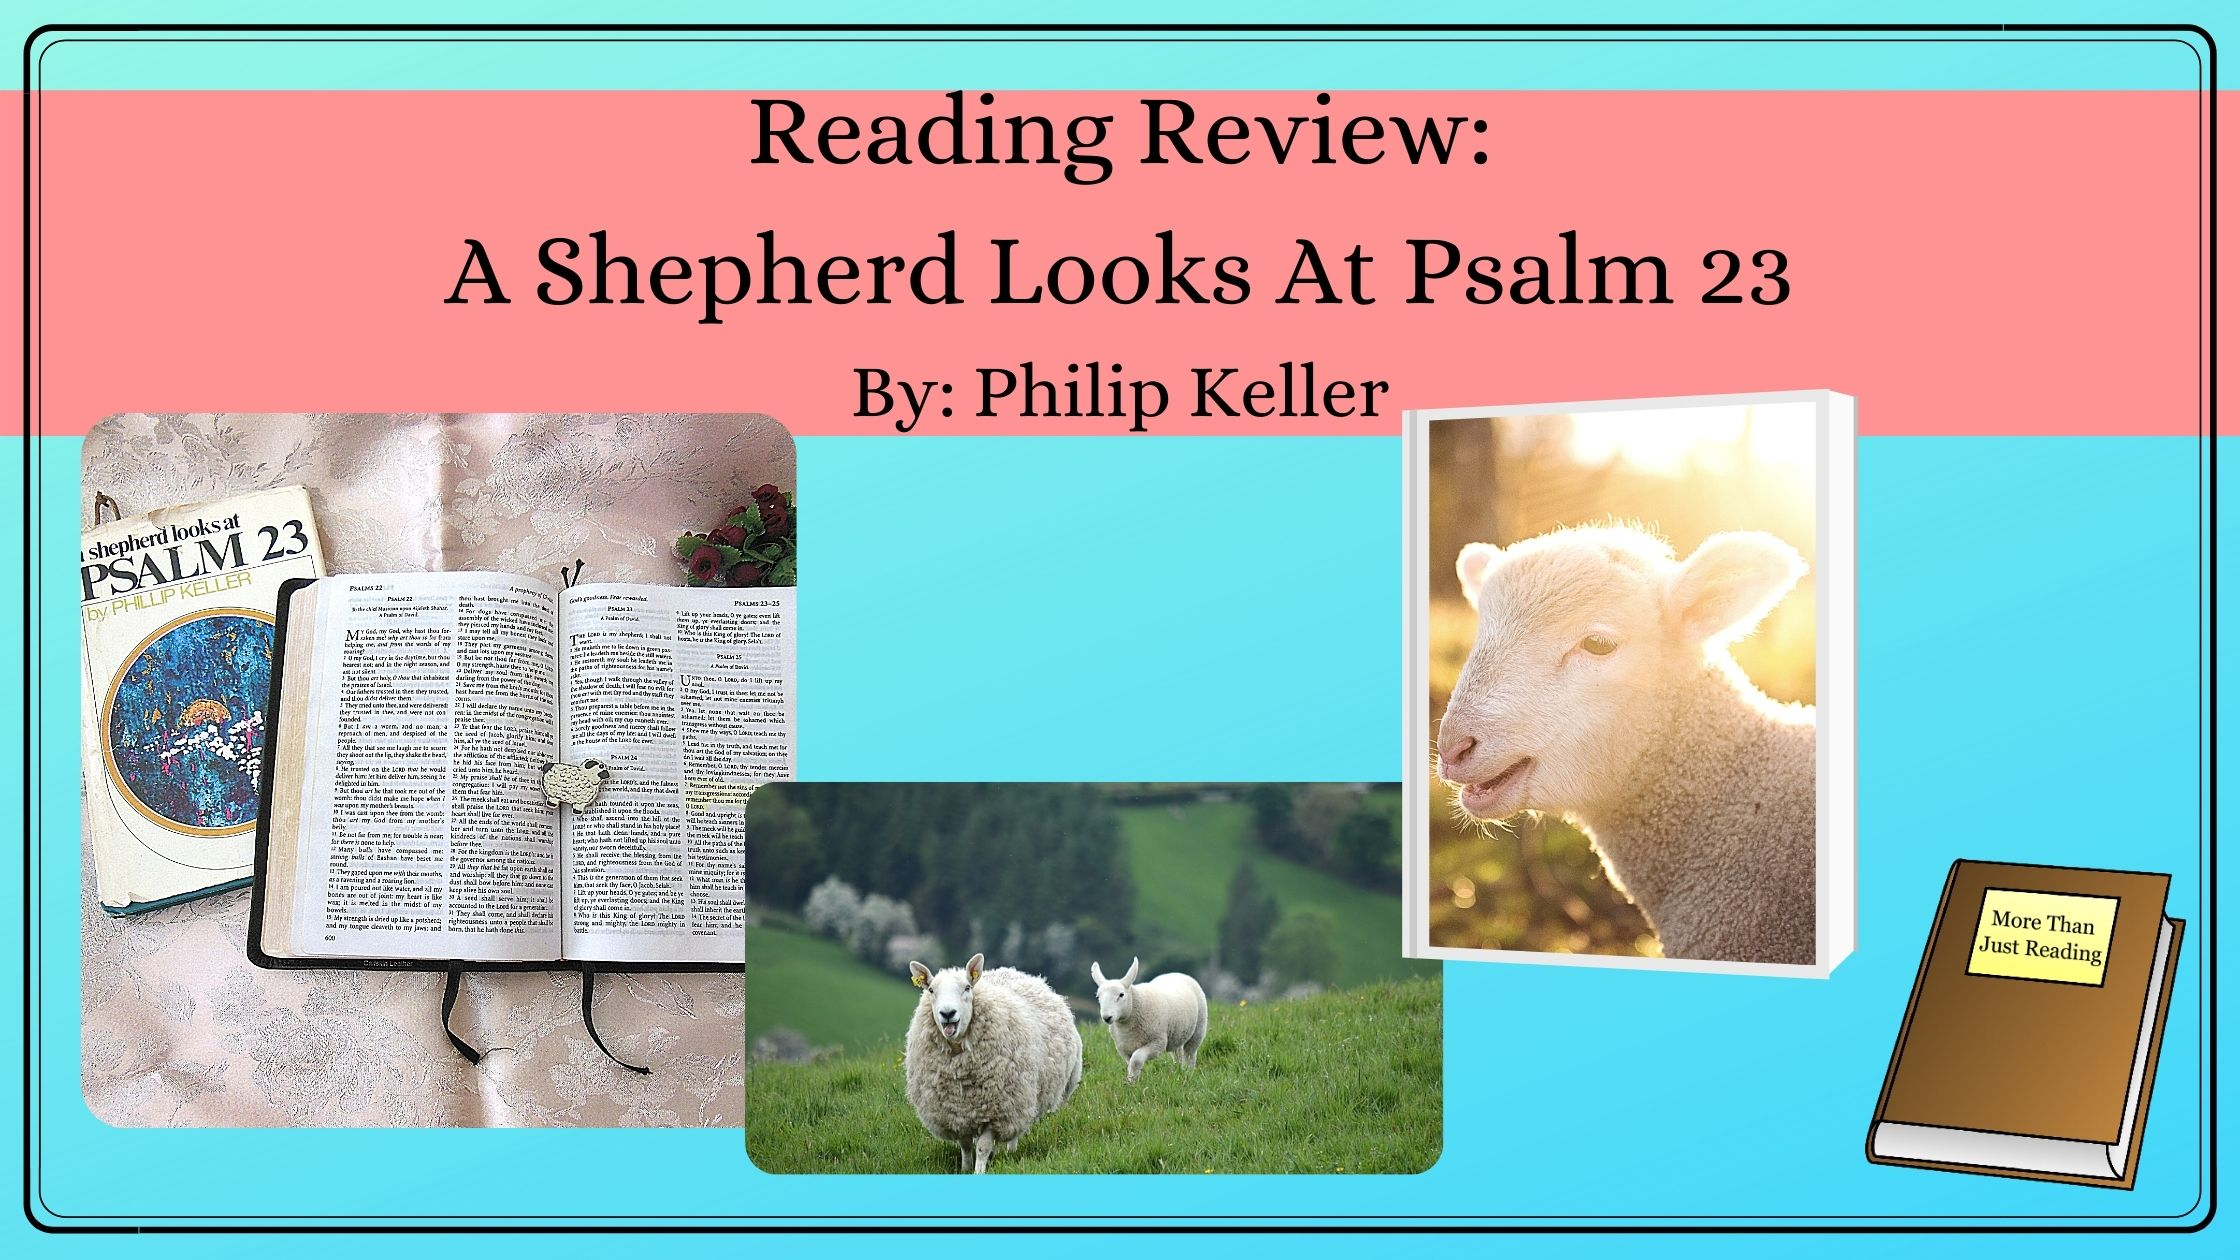 Title of blogpost and pictures of sheep